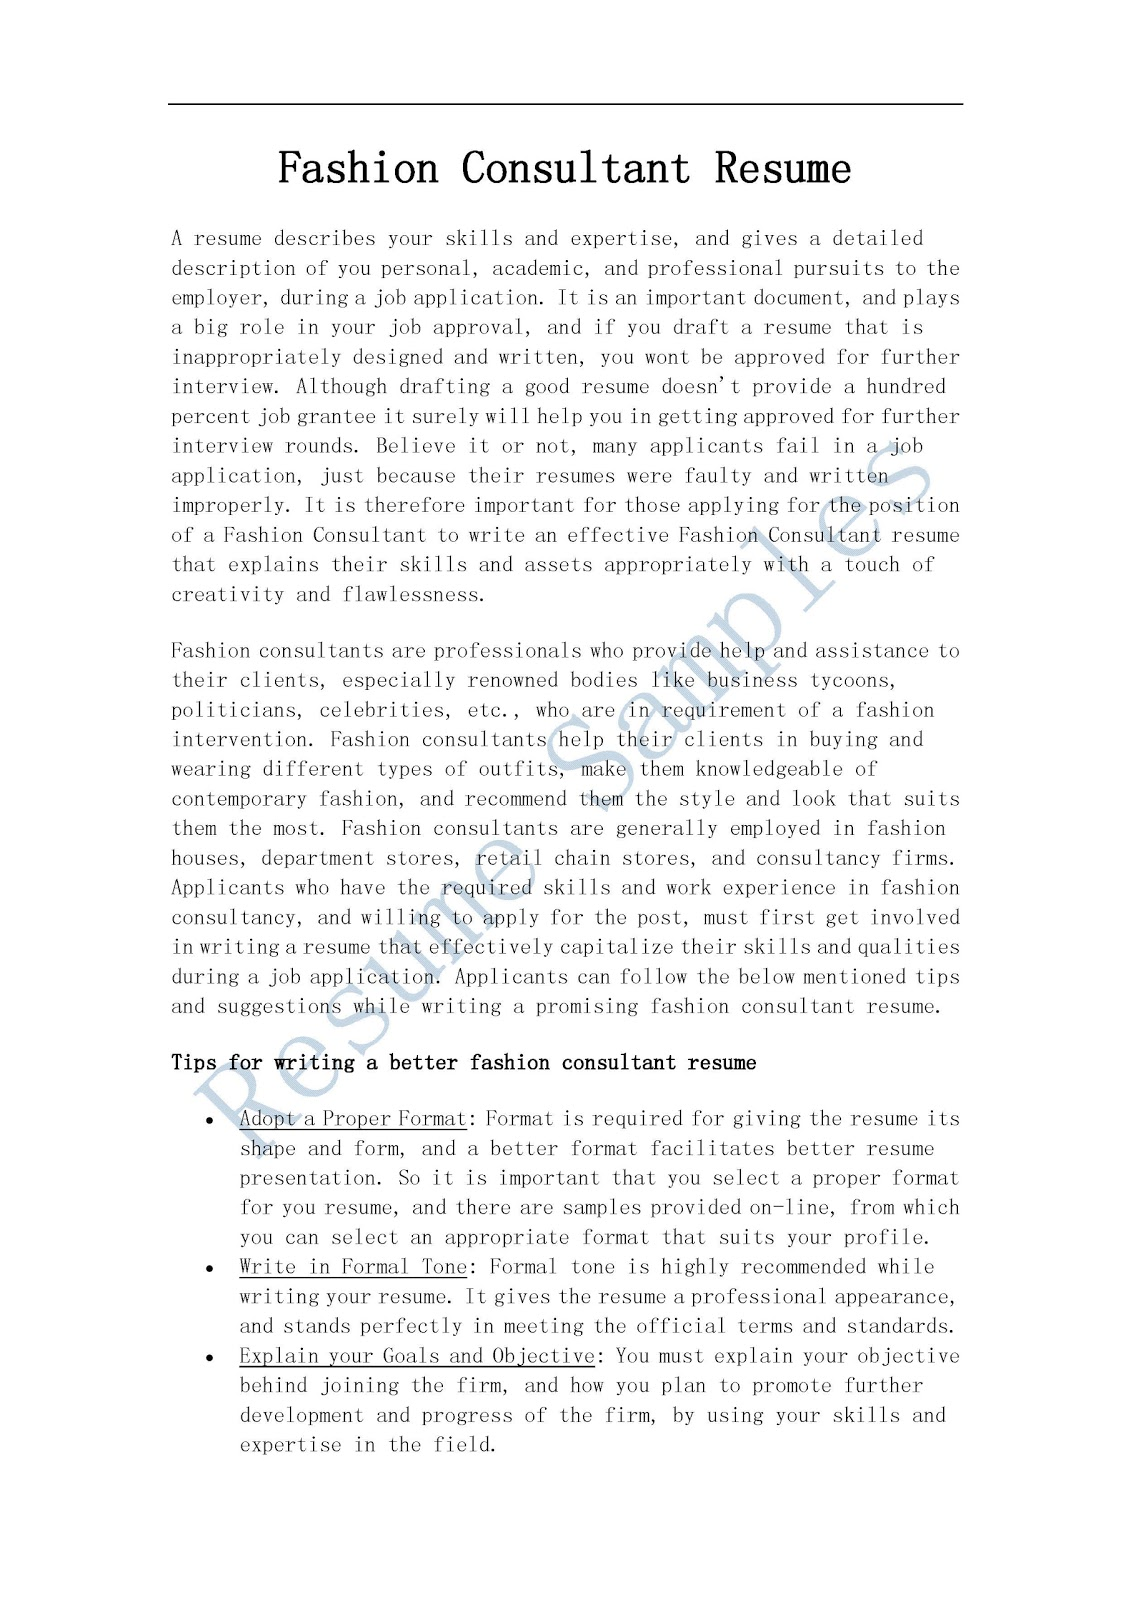 fashion consultant resumes template fashion consultant resume template fashion consultant resumes